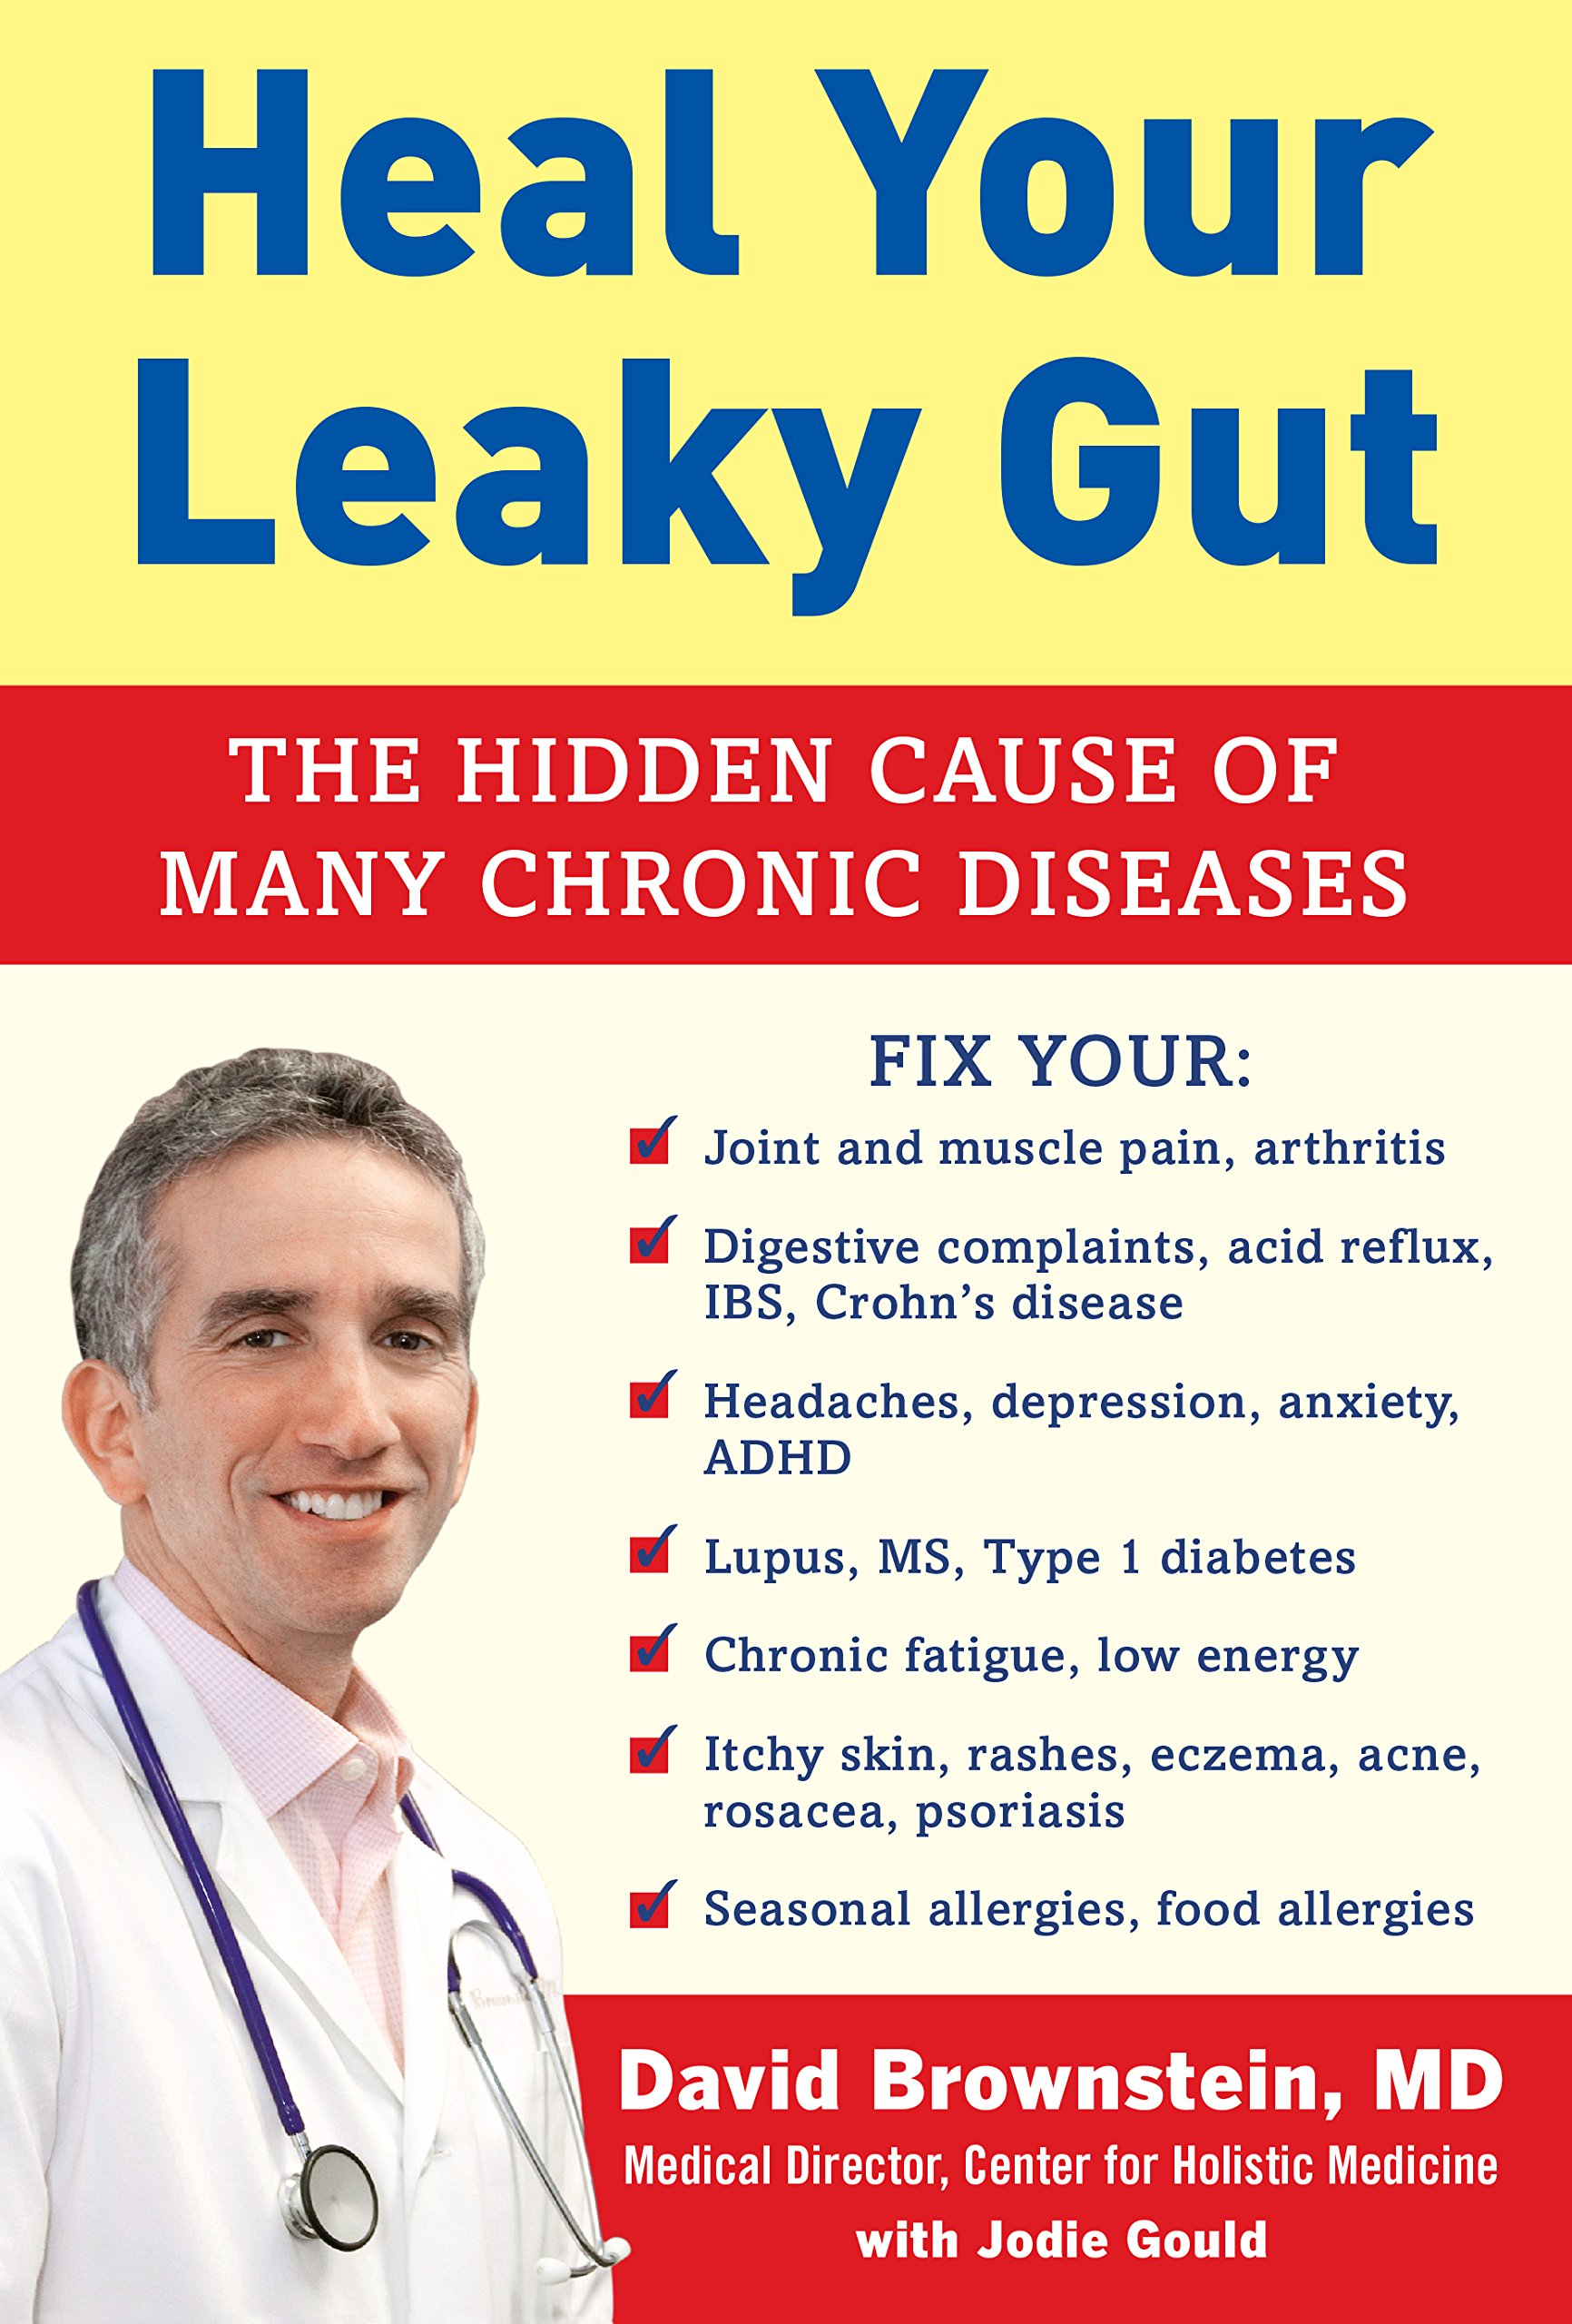 Heal Your Leaky Gut: The Hidden Cause of Many Chronic Diseases: Dr. David  Brownstein, Jodie Gould: 9781630060800: Amazon.com: Books